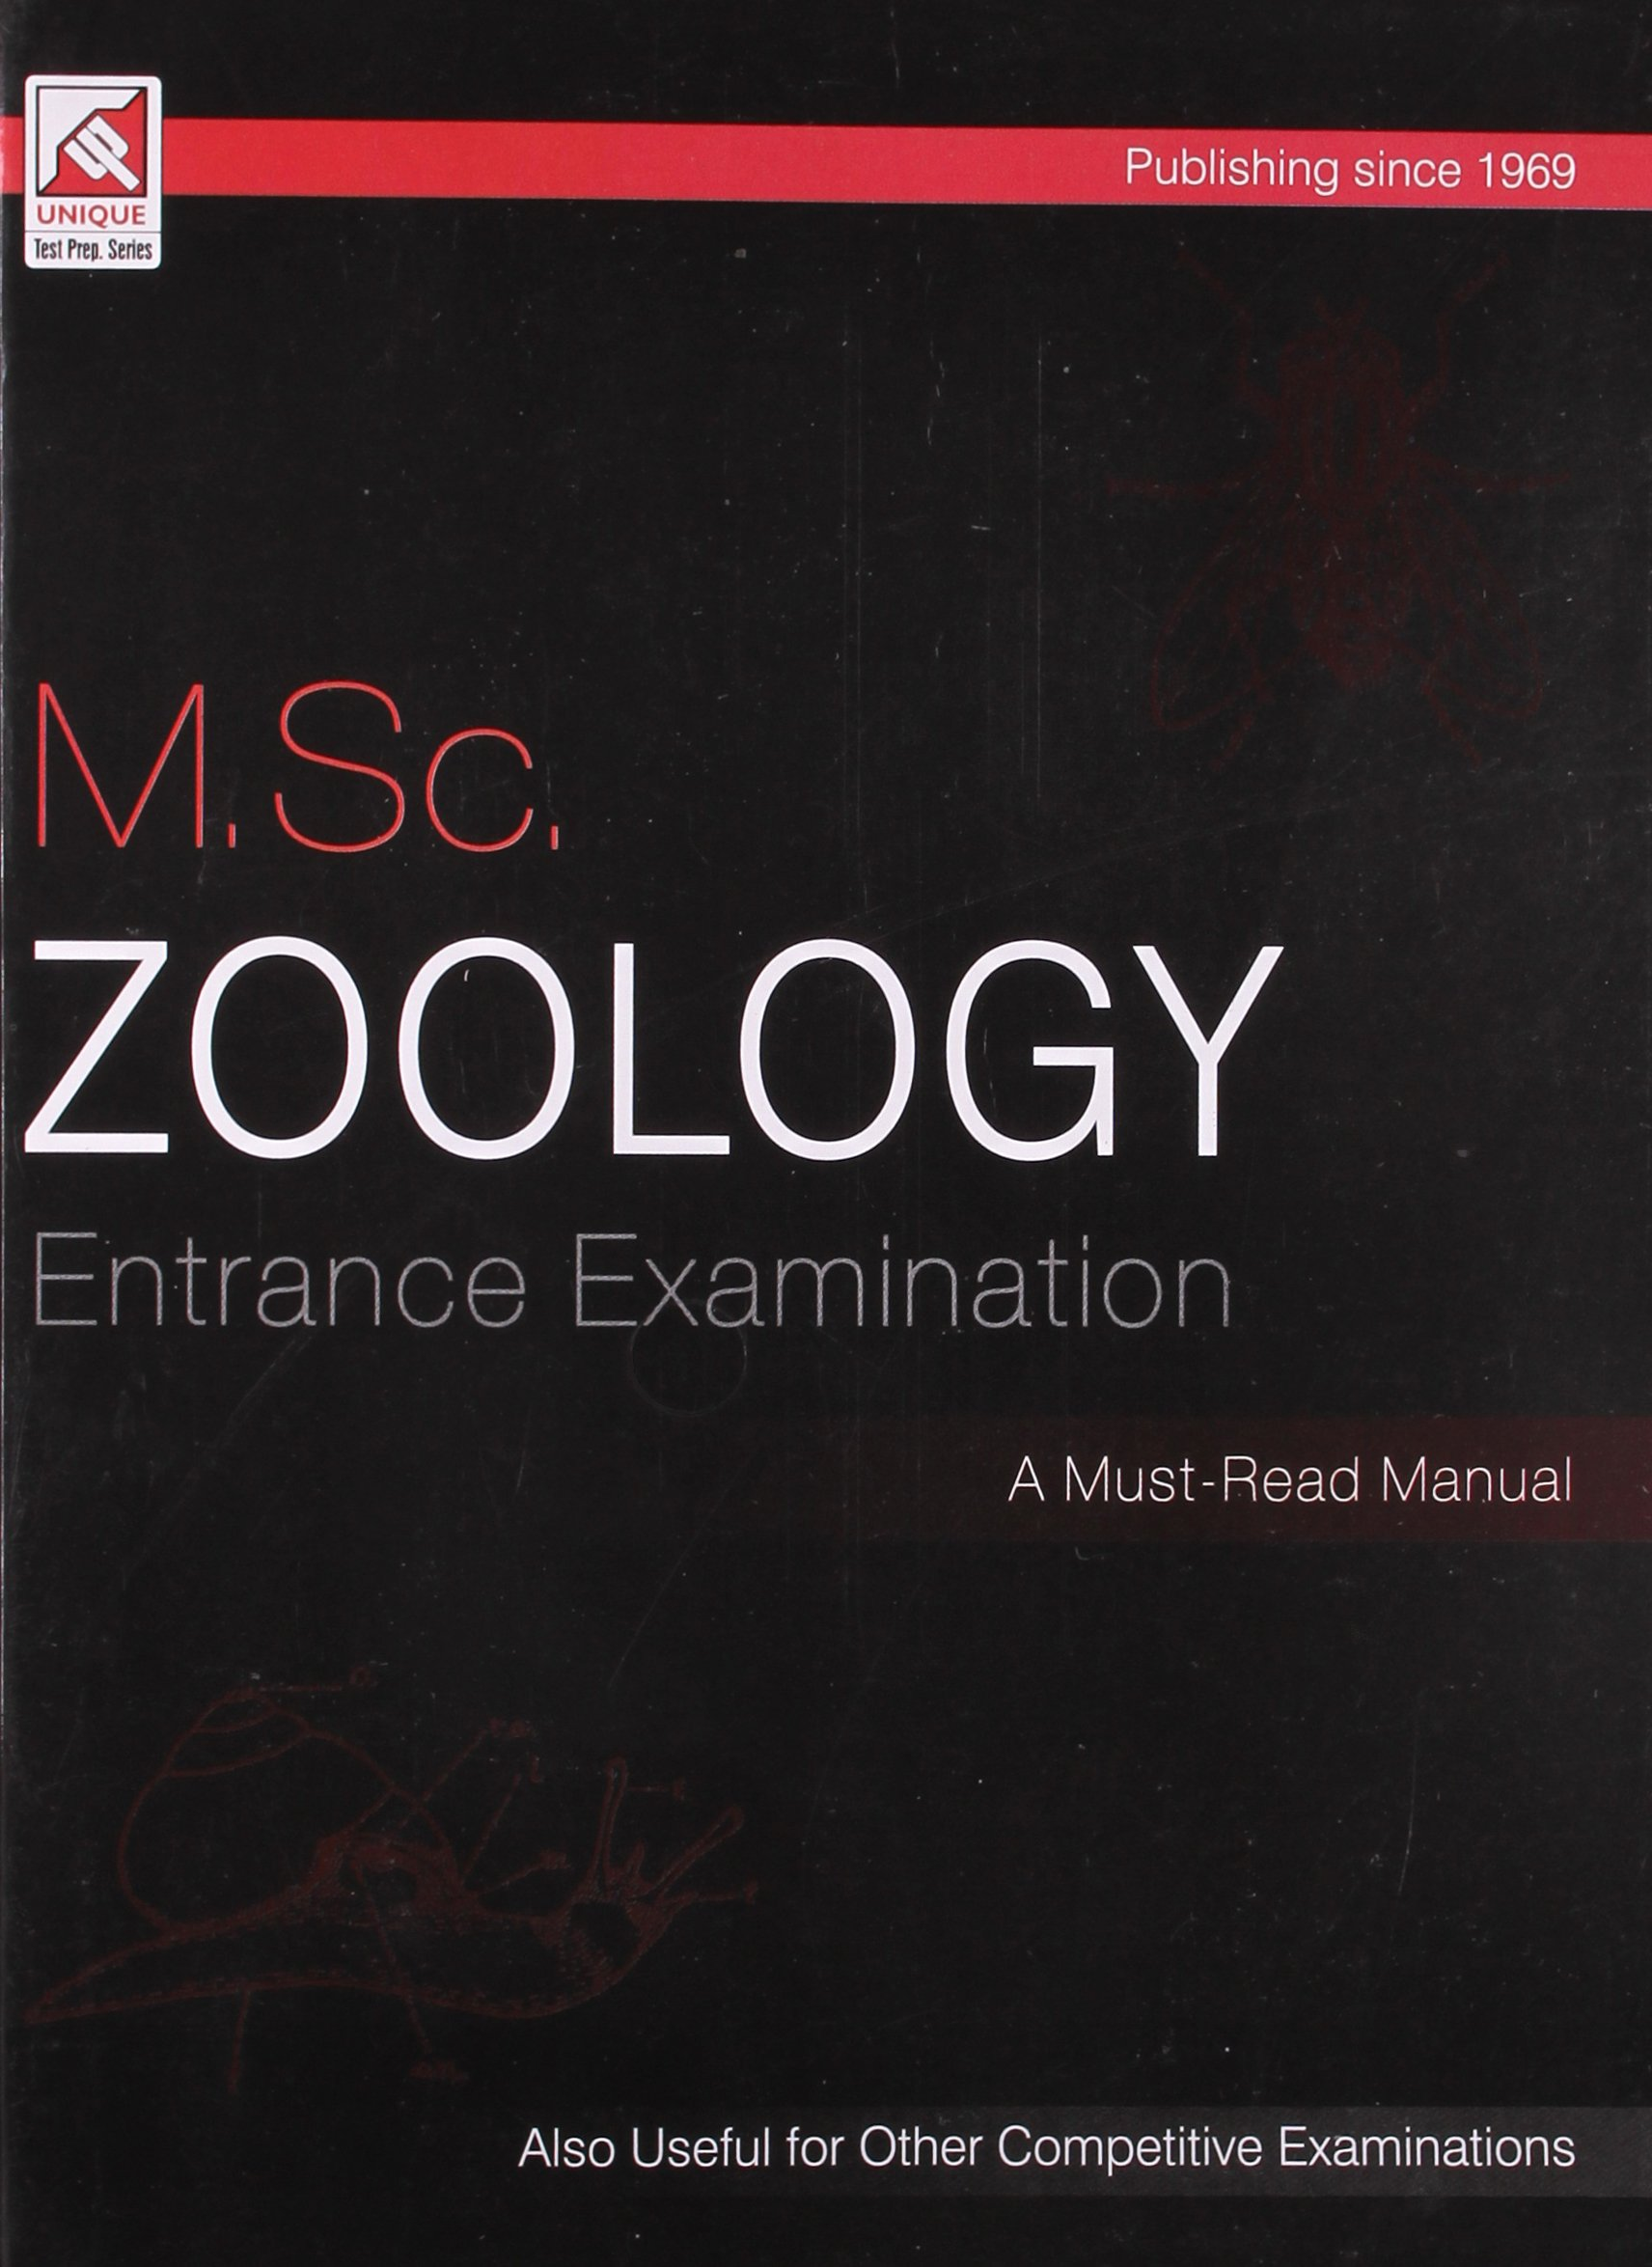 Amazon.in: Buy M.Sc. Zoology Entrance Examination Book Online at Low Prices  in India | M.Sc. Zoology Entrance Examination Reviews & Ratings